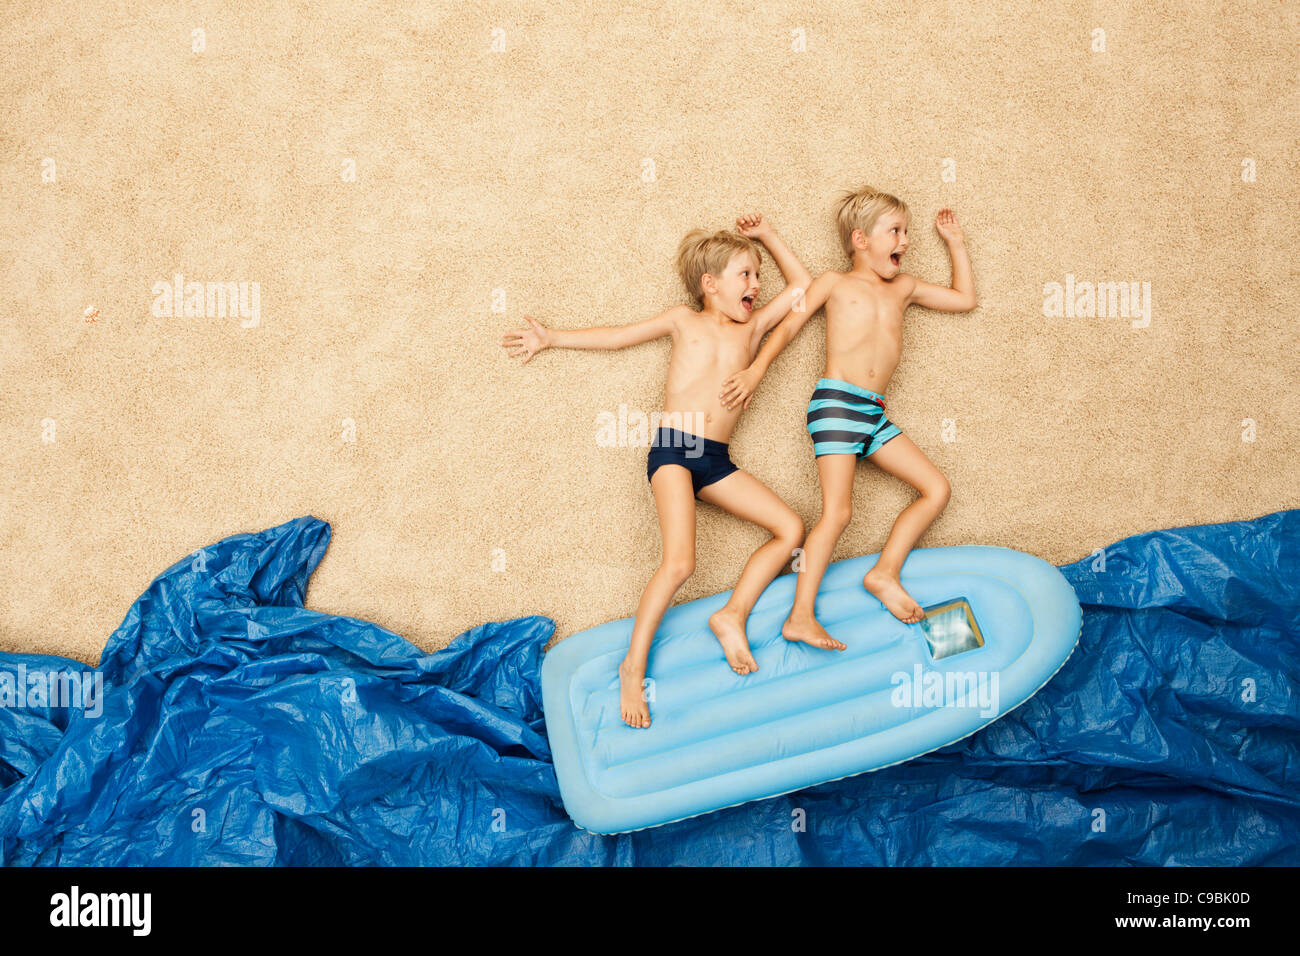 Germany, Boys on inflatable raft in water at beach Stock Photo